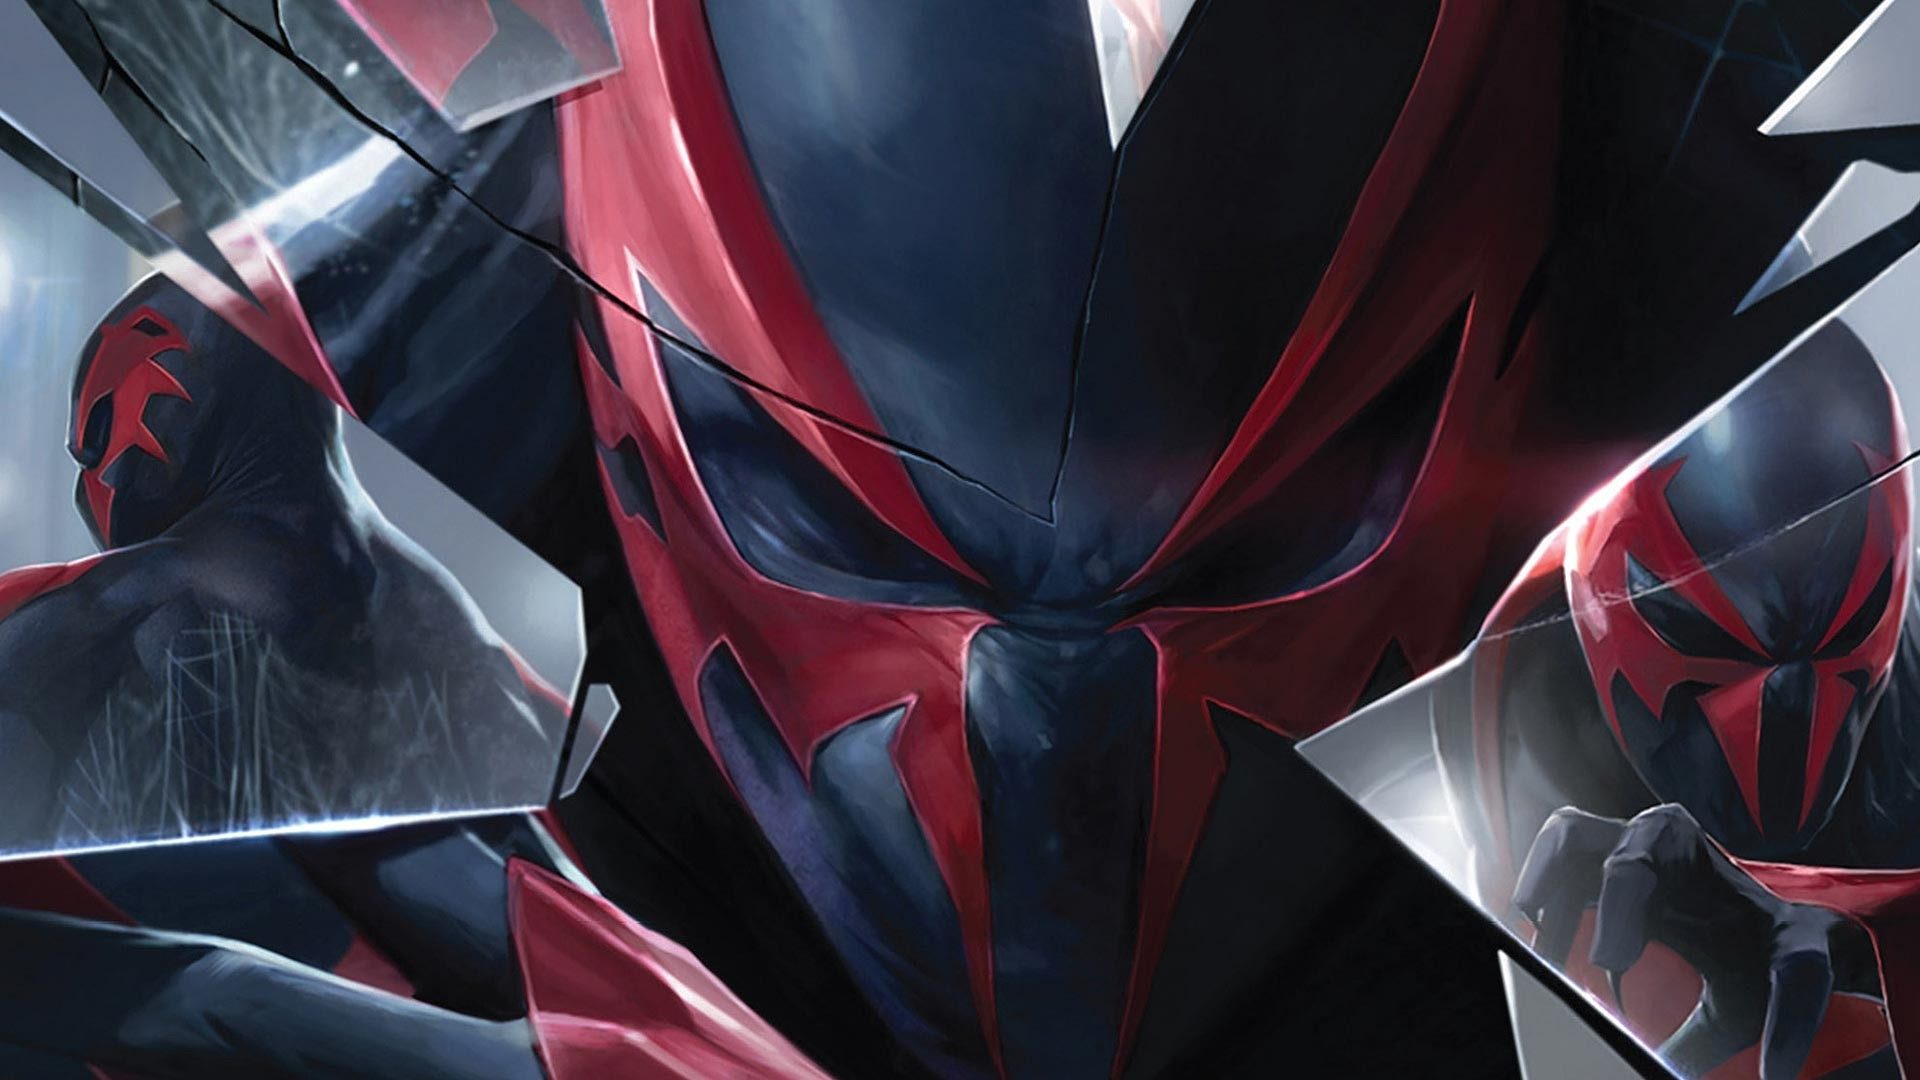 Spider Man 2099 Wallpaper (78+ Images